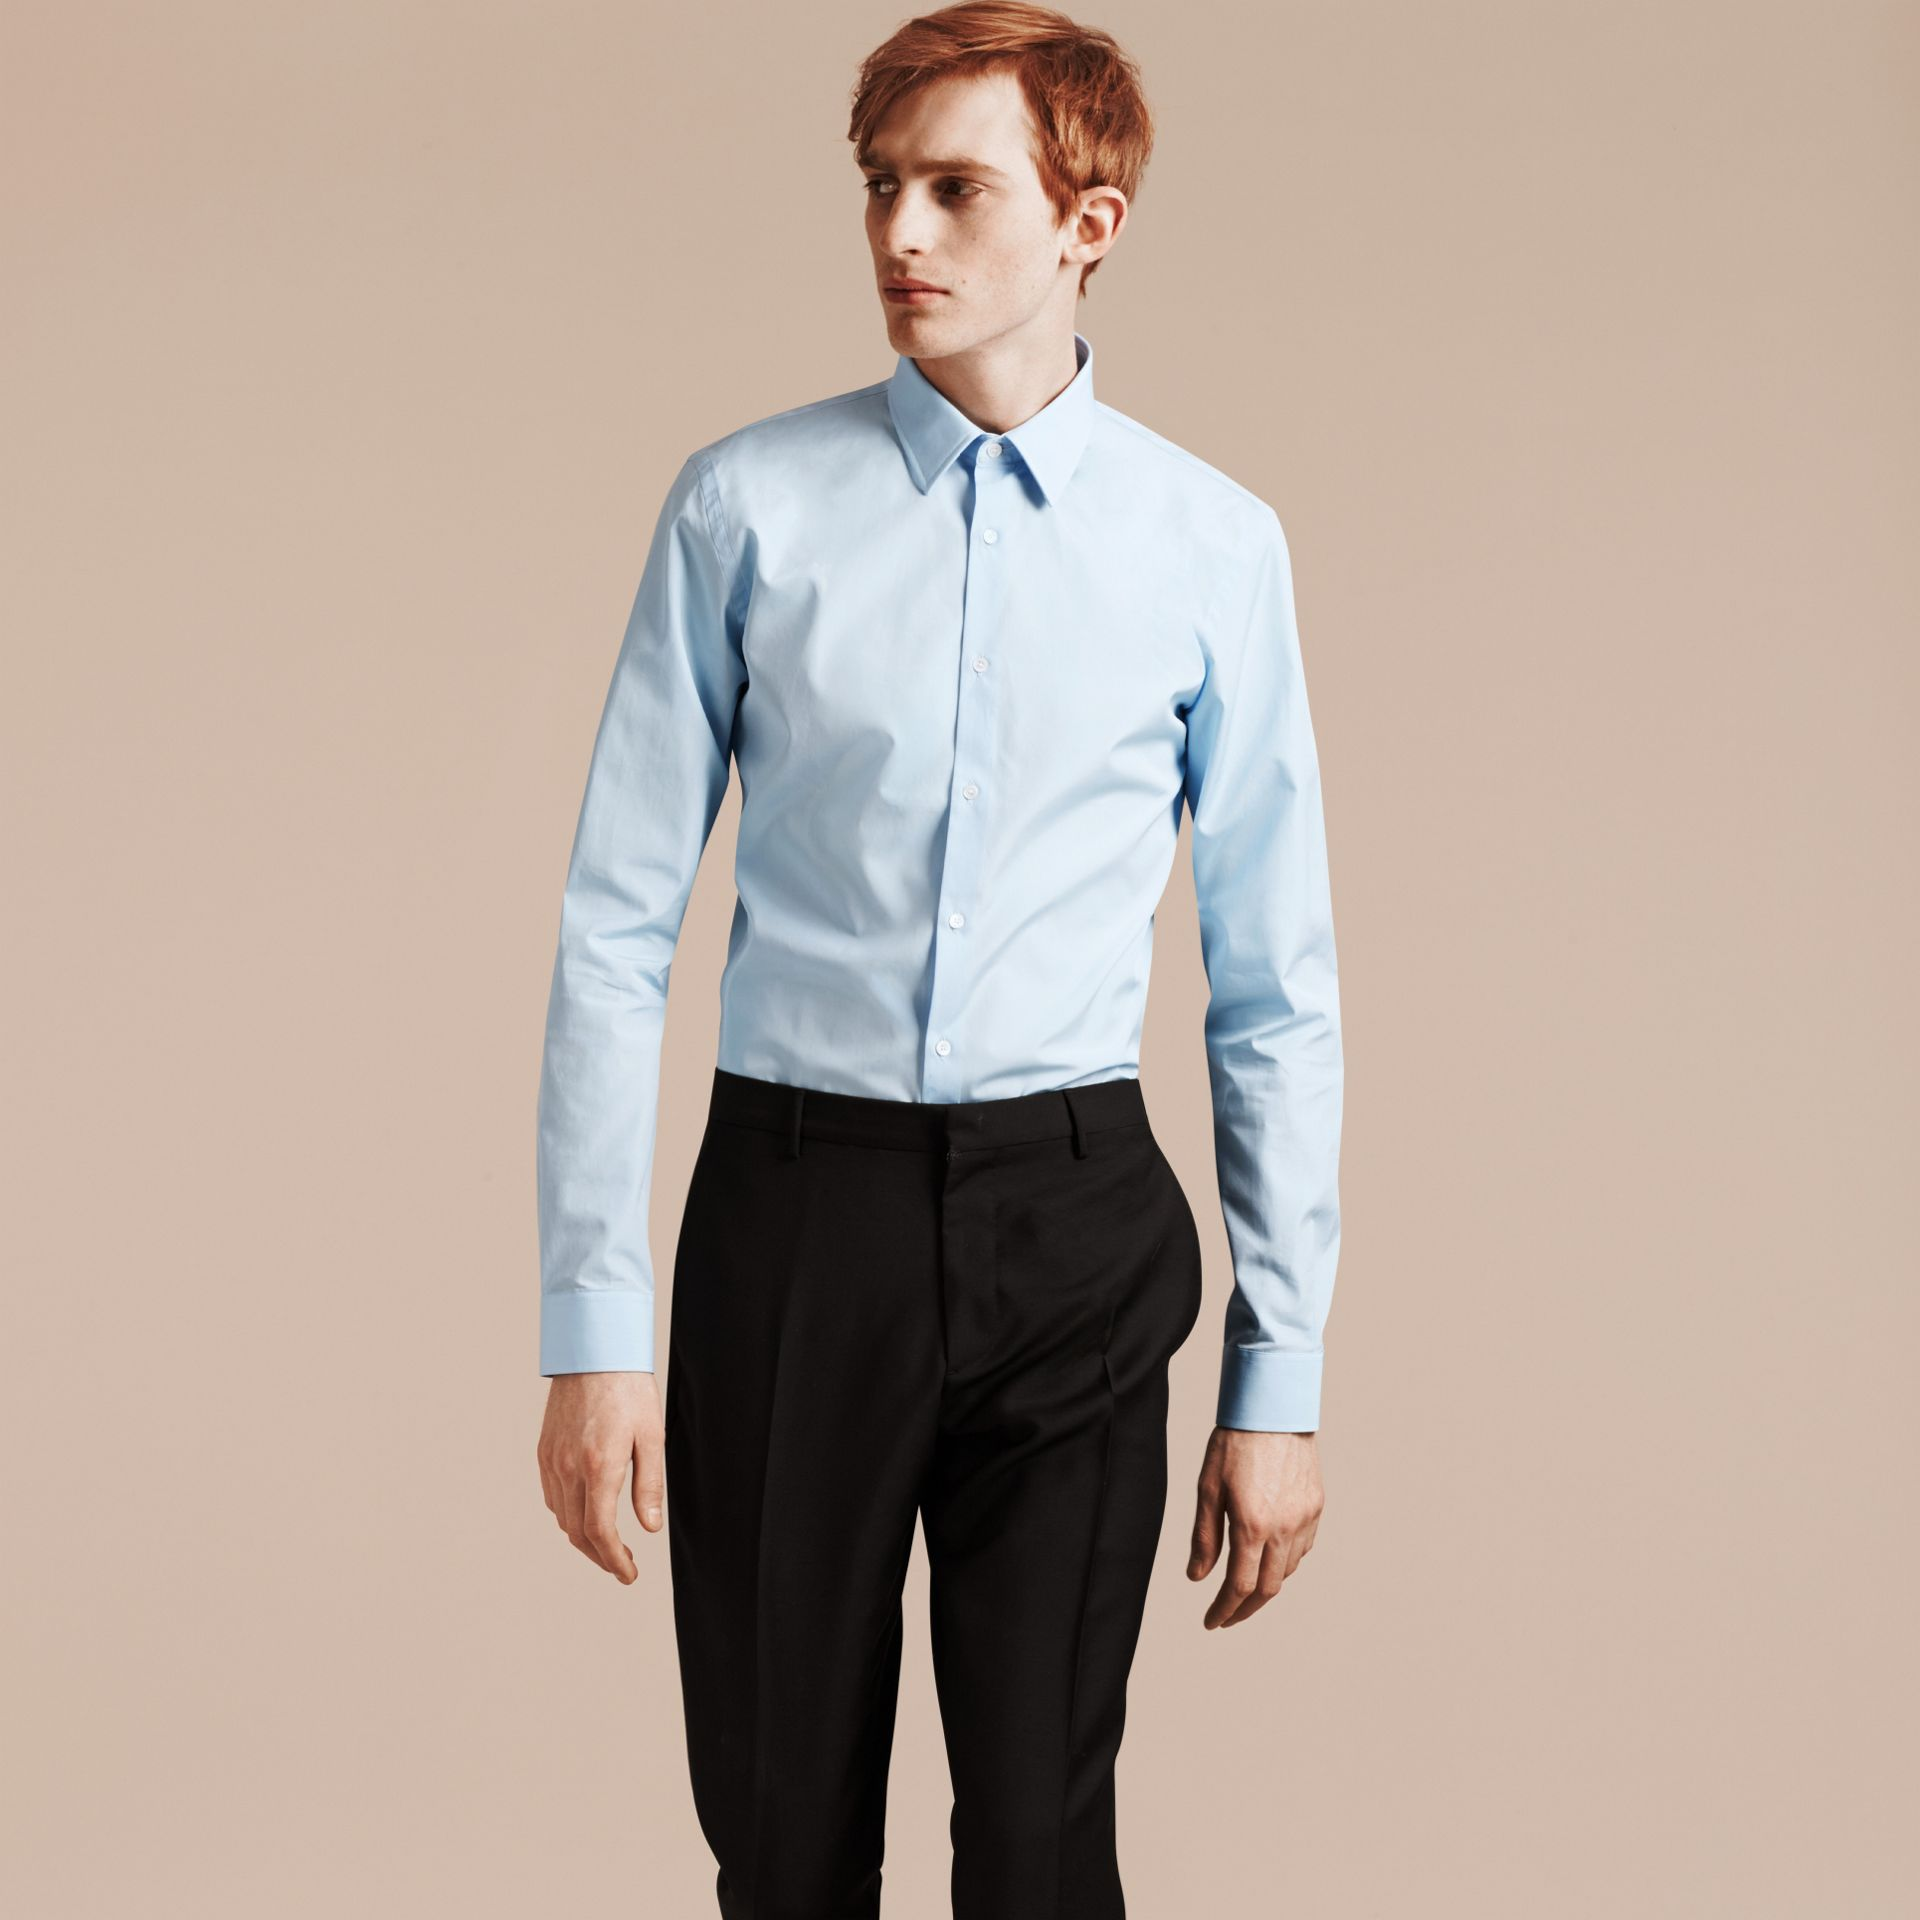 City blue Slim Fit Cotton Poplin Shirt City Blue - gallery image 6